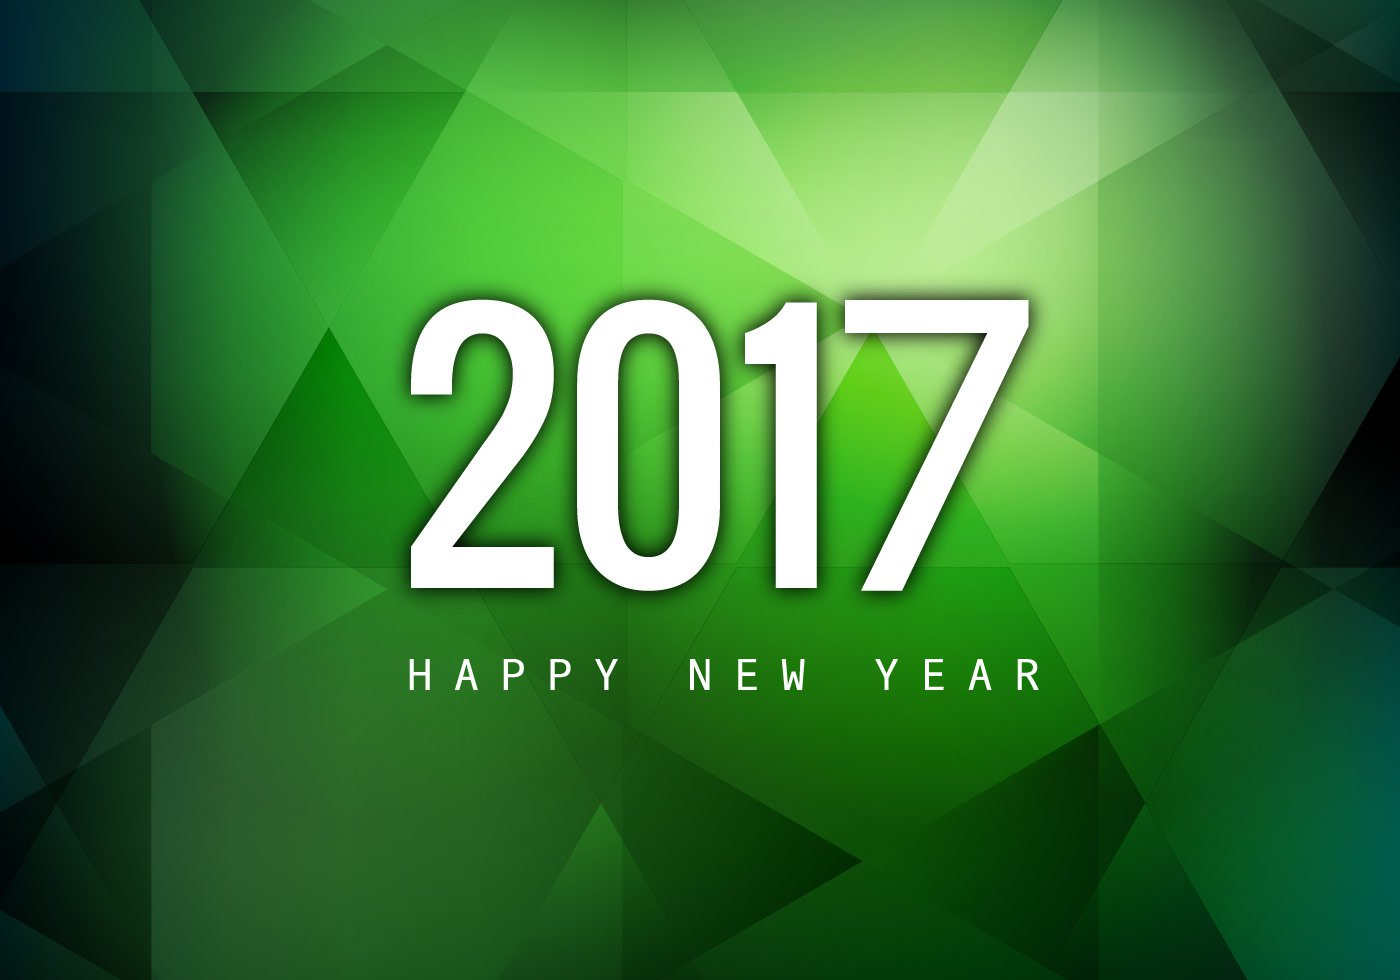 Happy New Year 2017 HD Photos Download